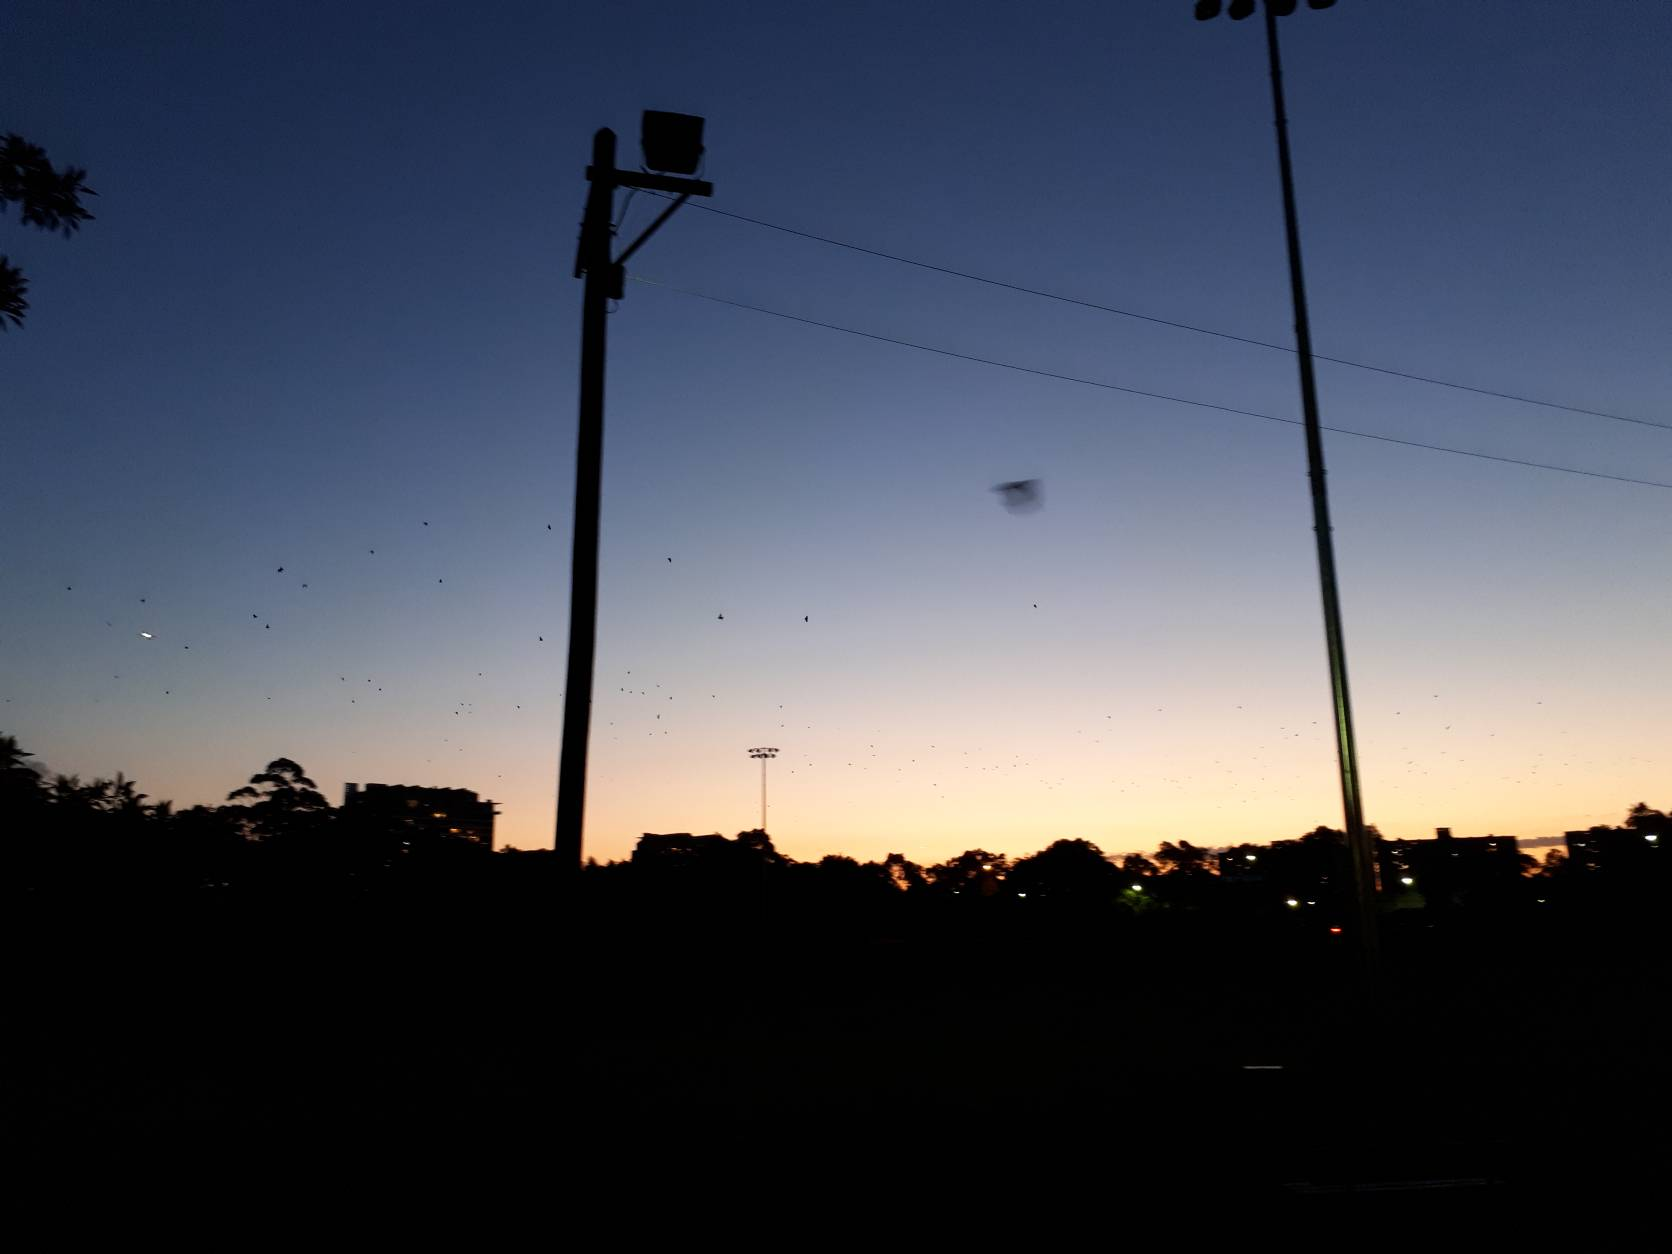 Sydney by dusk with flying foxes